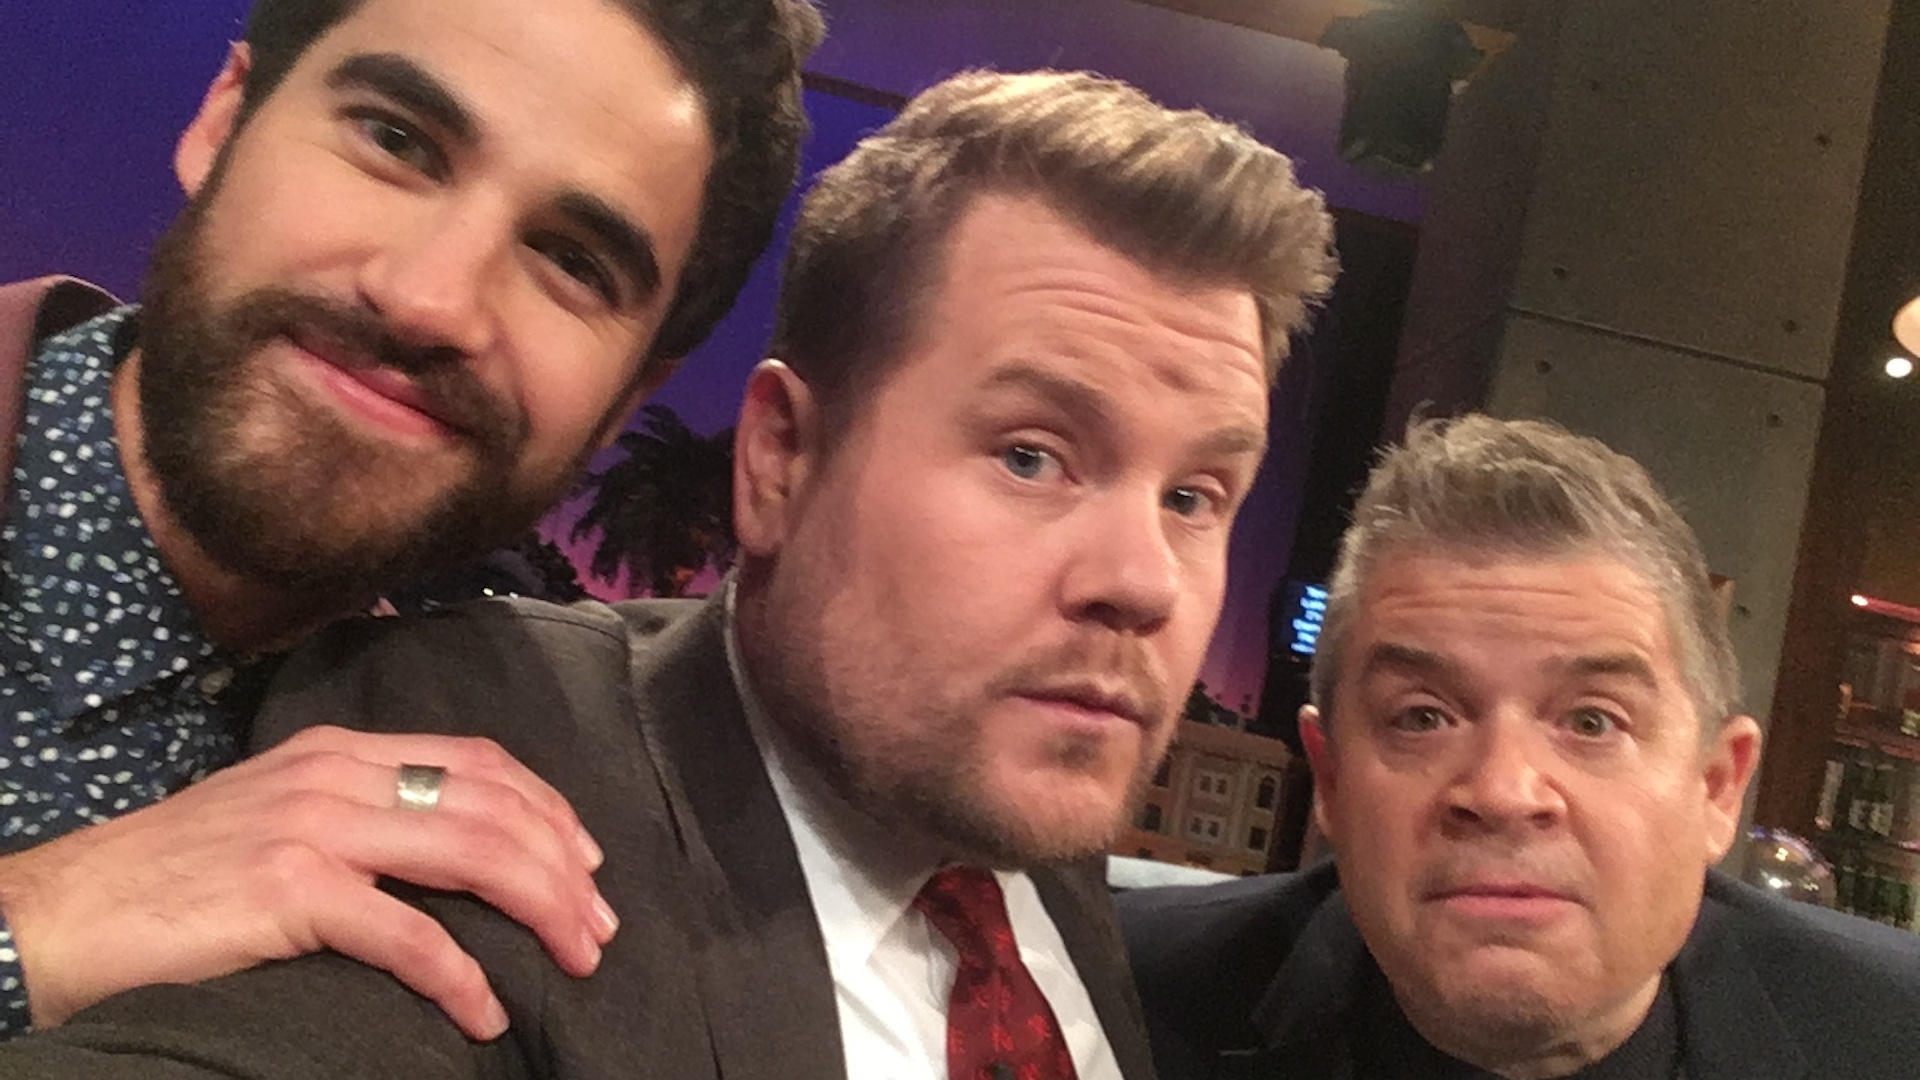 Darren Criss & Patton Oswalt